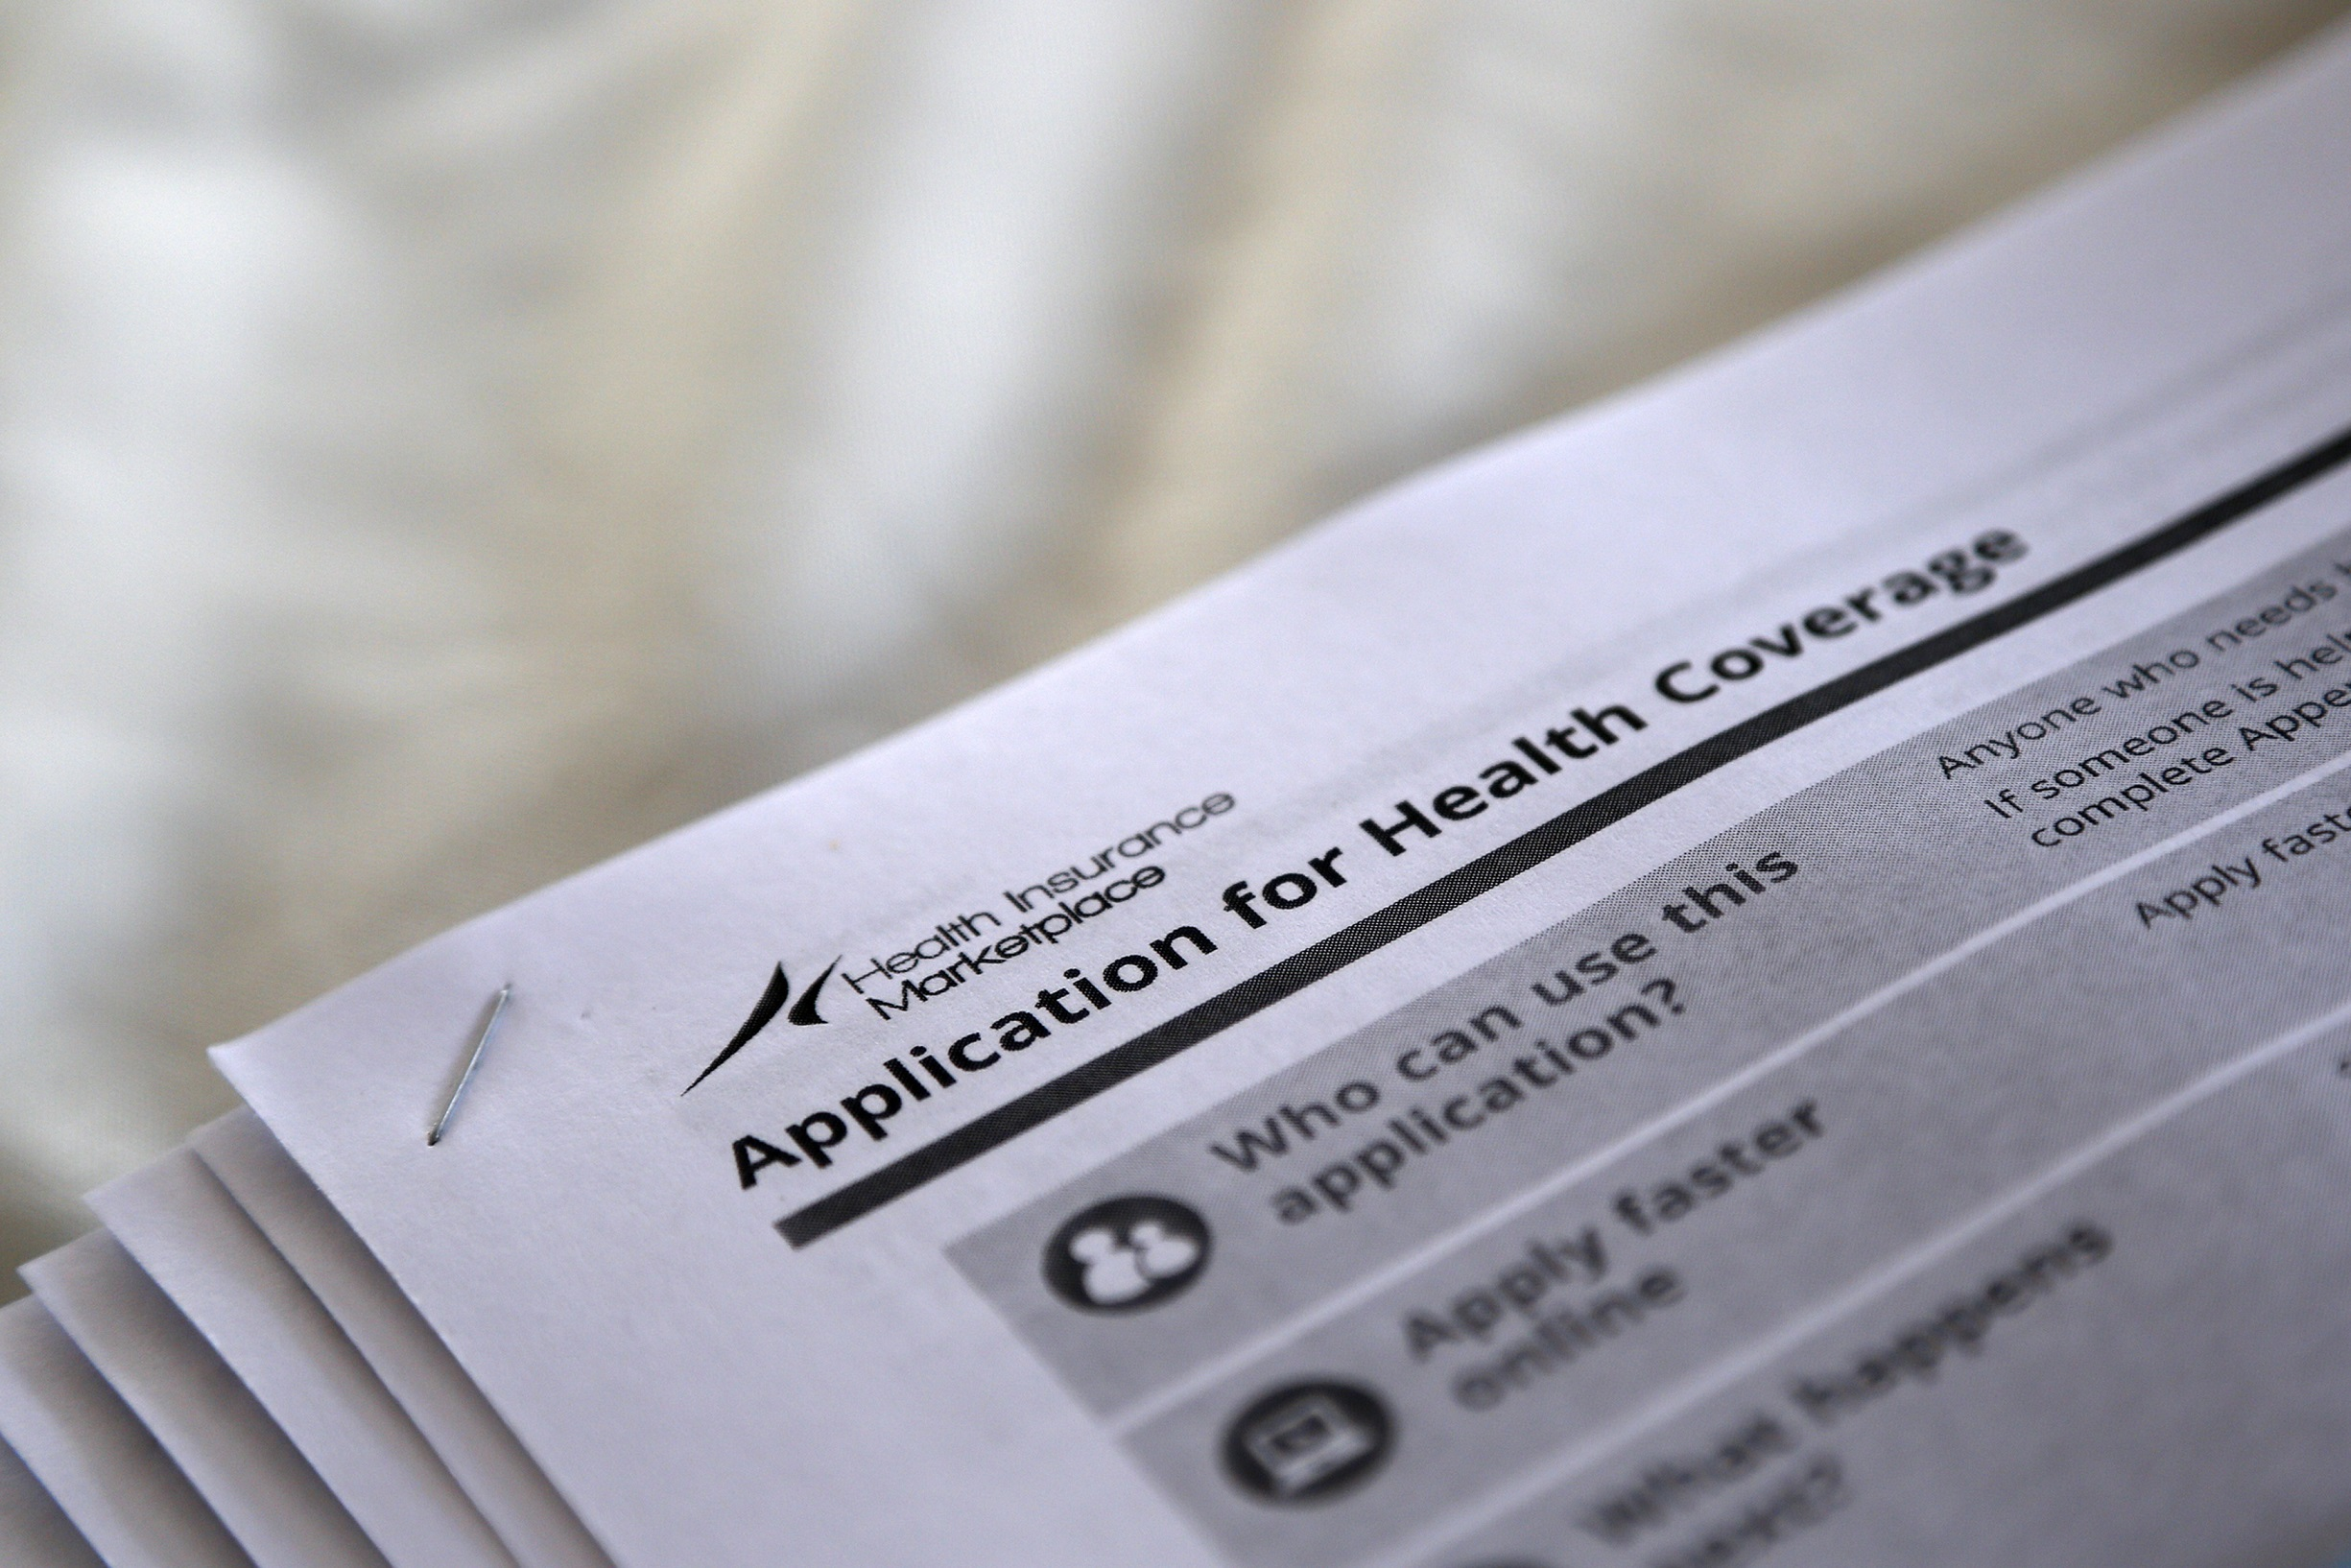 """The federal government forms for applying for health coverage are seen at a rally held by supporters of the Affordable Care Act, widely referred to as """"Obamacare"""", outside the Jackson-Hinds Comprehensive Health Center in Jackson, Mississippi, U.S. on October 4, 2013. REUTERS/Jonathan Bachman/File Photo - RTSO349"""